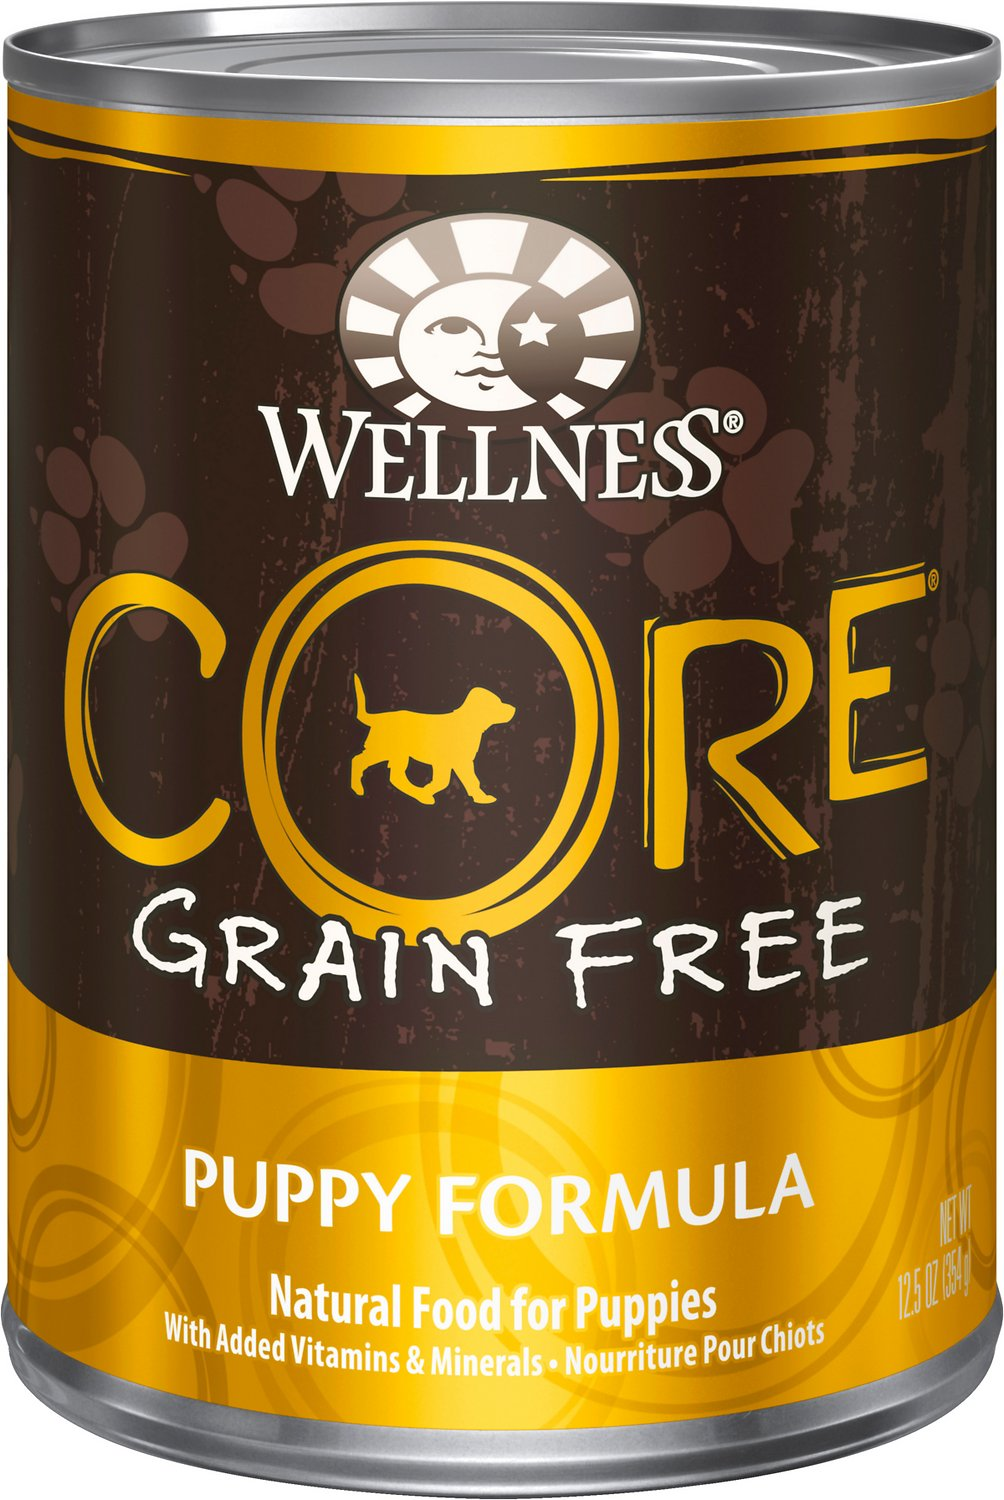 Wellness Core Grain Free Puppy Formula Canned Dog Food 12